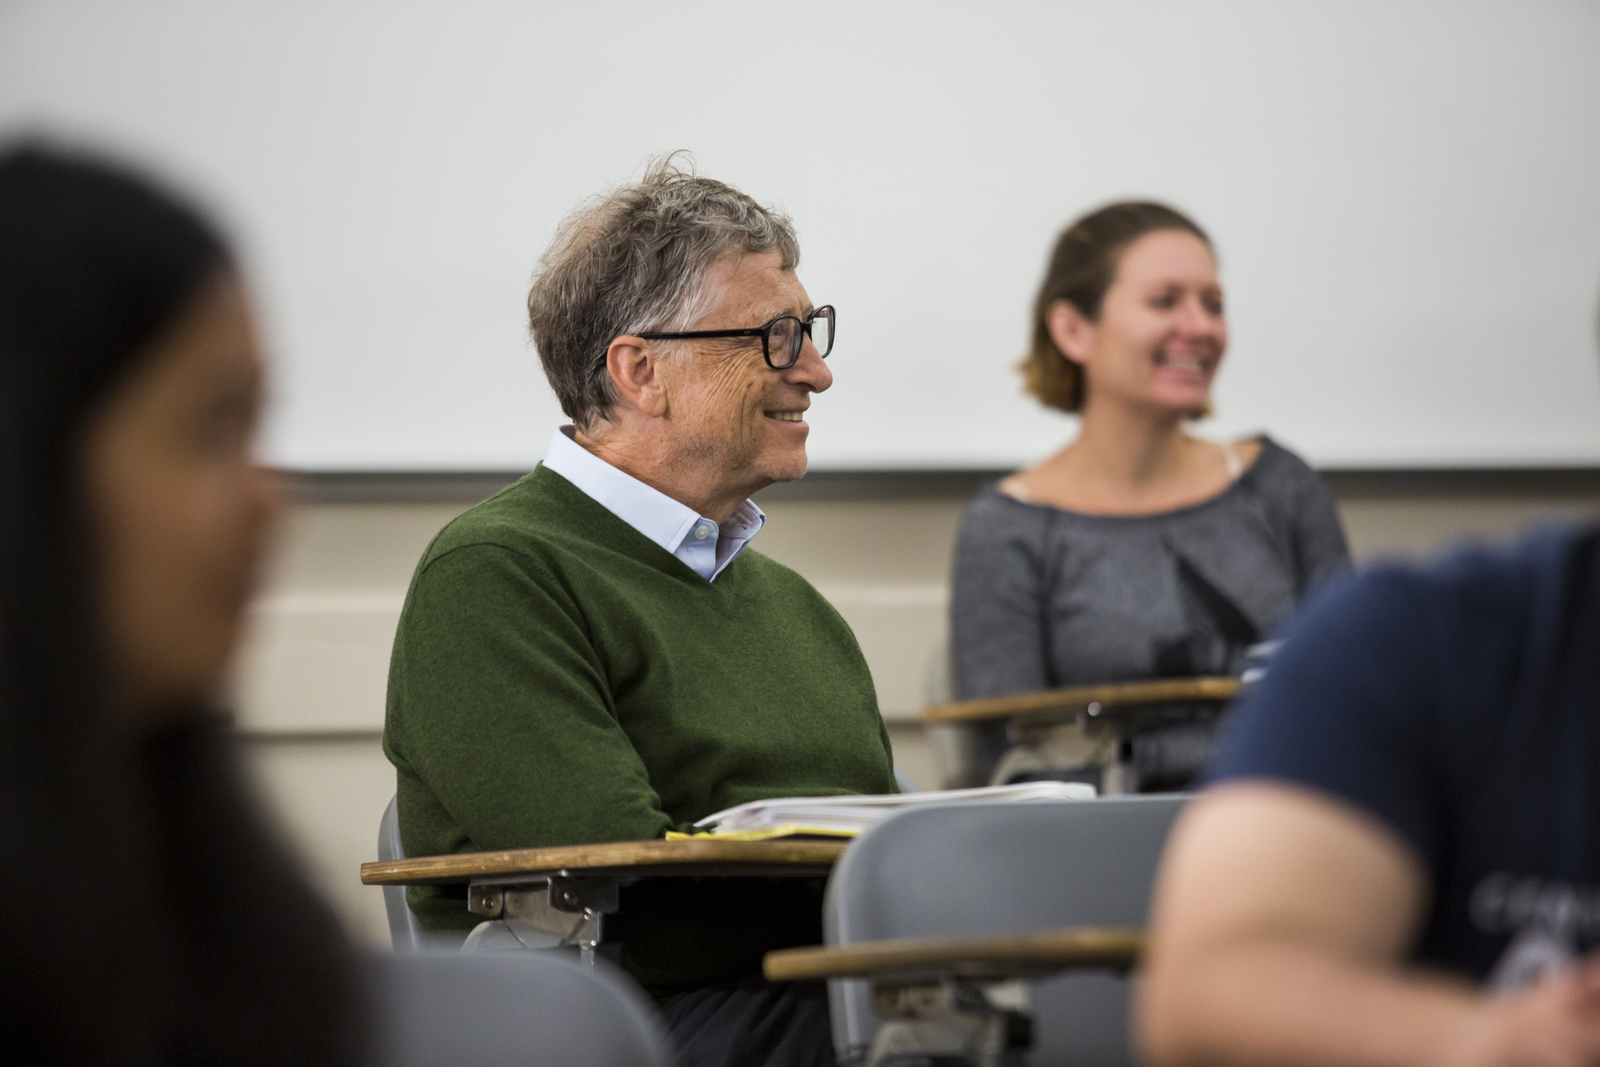 Bill Gates at student desk